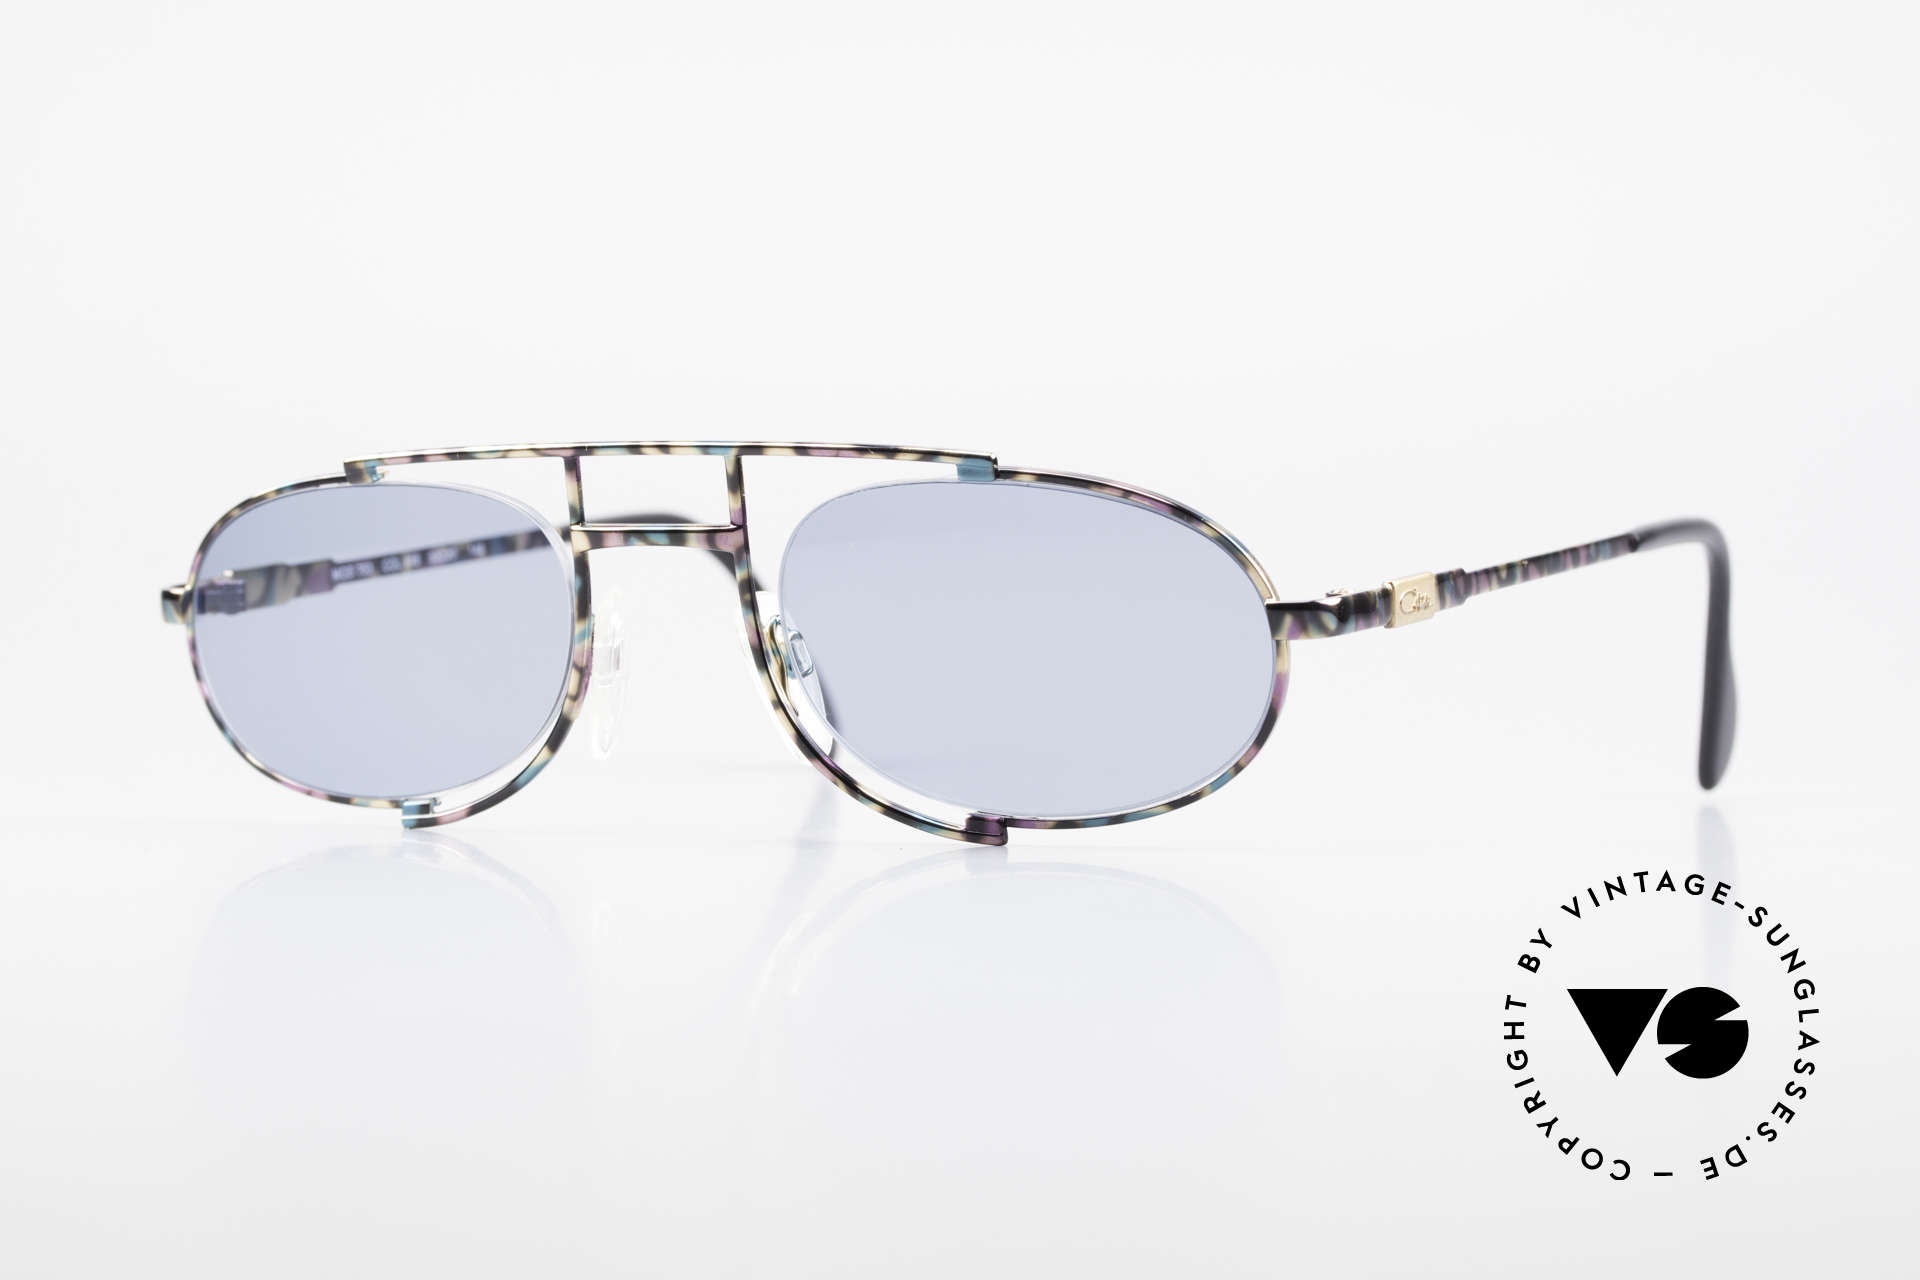 Cazal 753 Oval 90's Designer Sunglasses, rare, oval vintage sunglasses by CAZAL from 1992, Made for Men